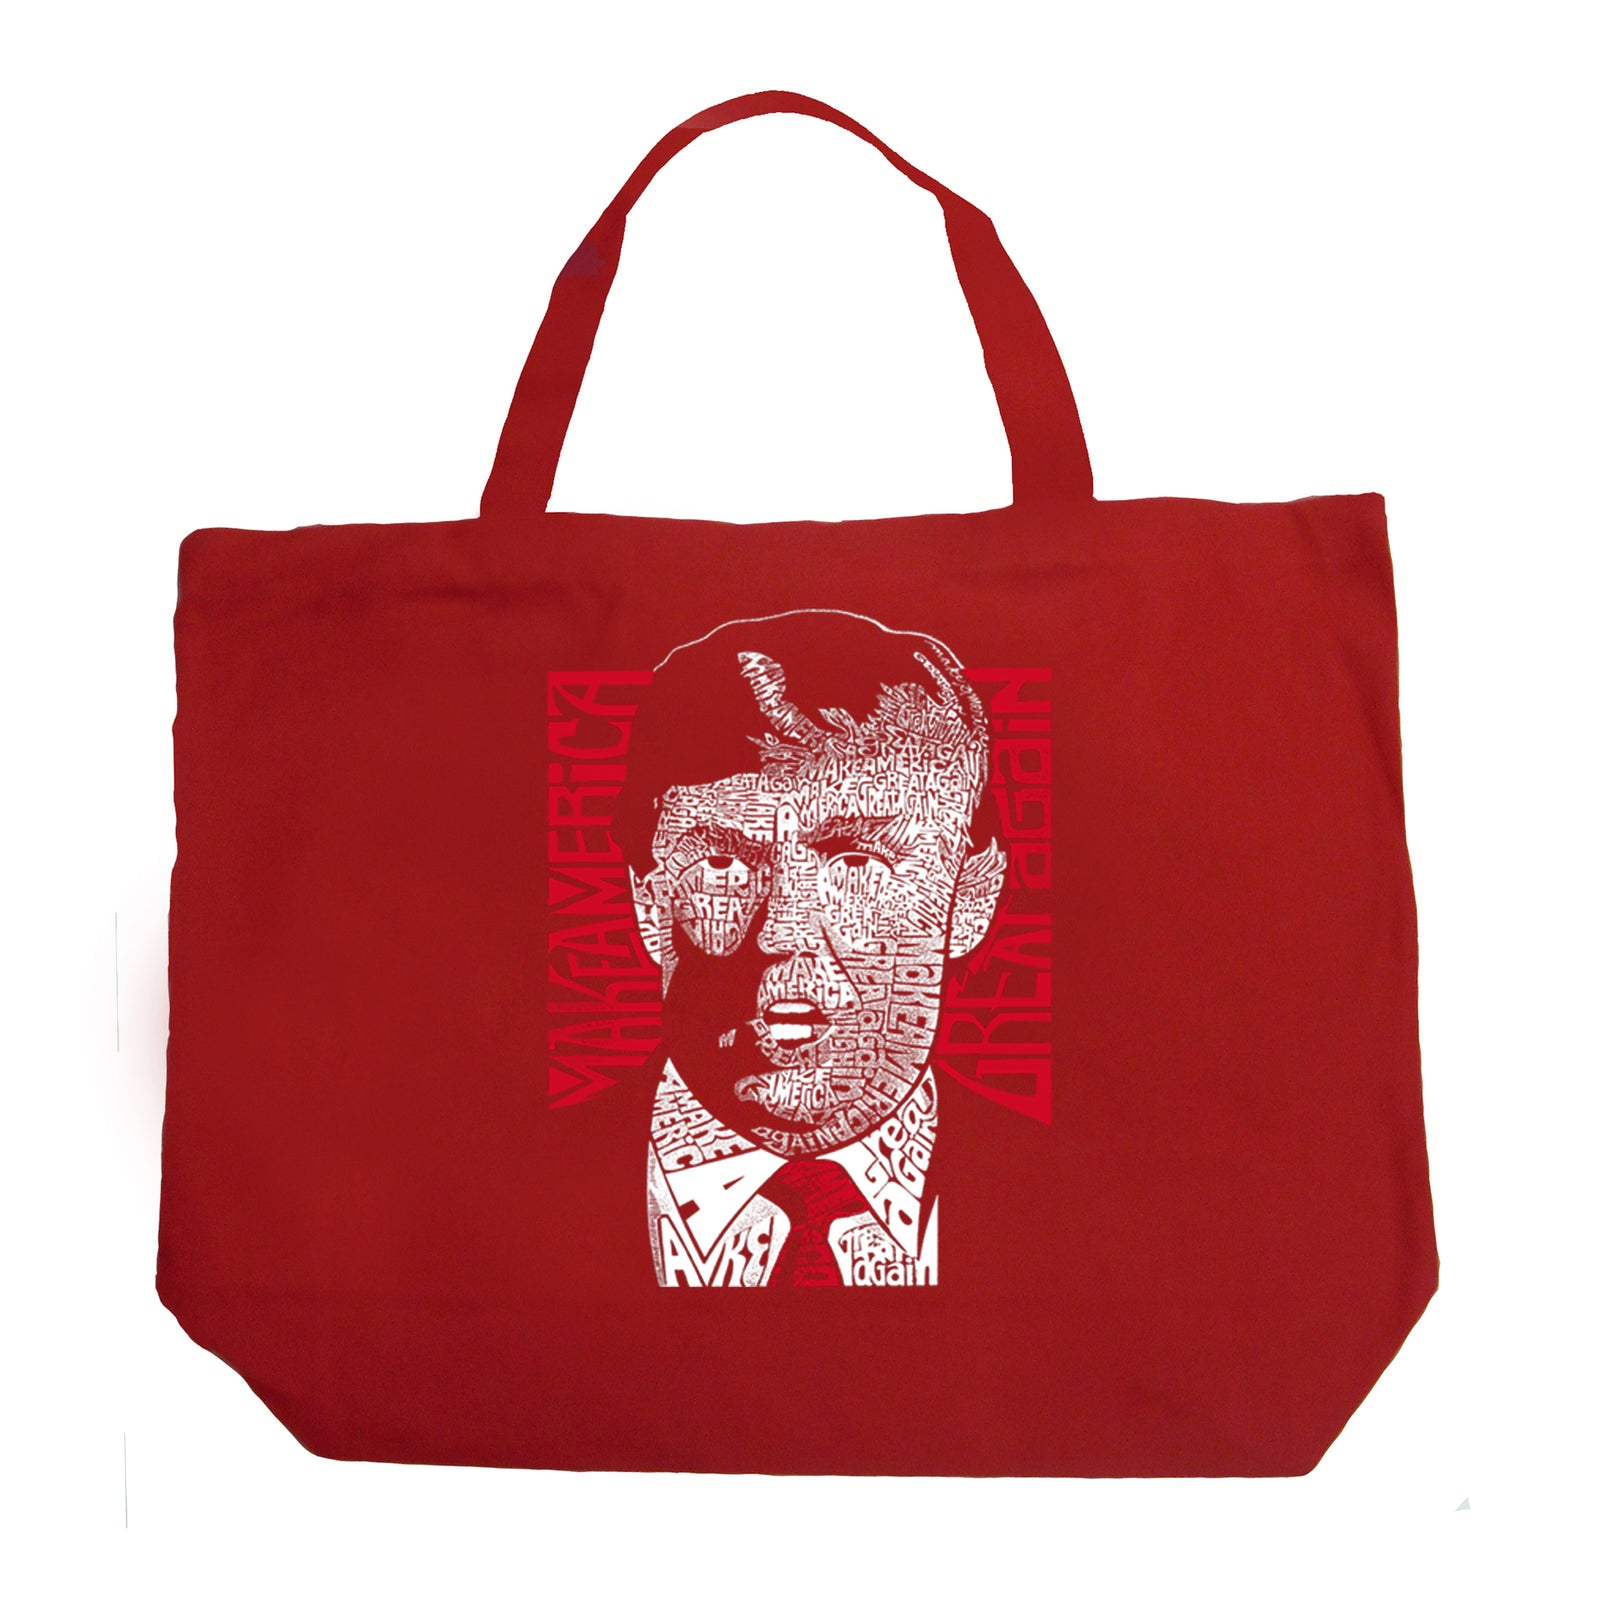 Large Tote Bag - TRUMP  - Make America Great Again